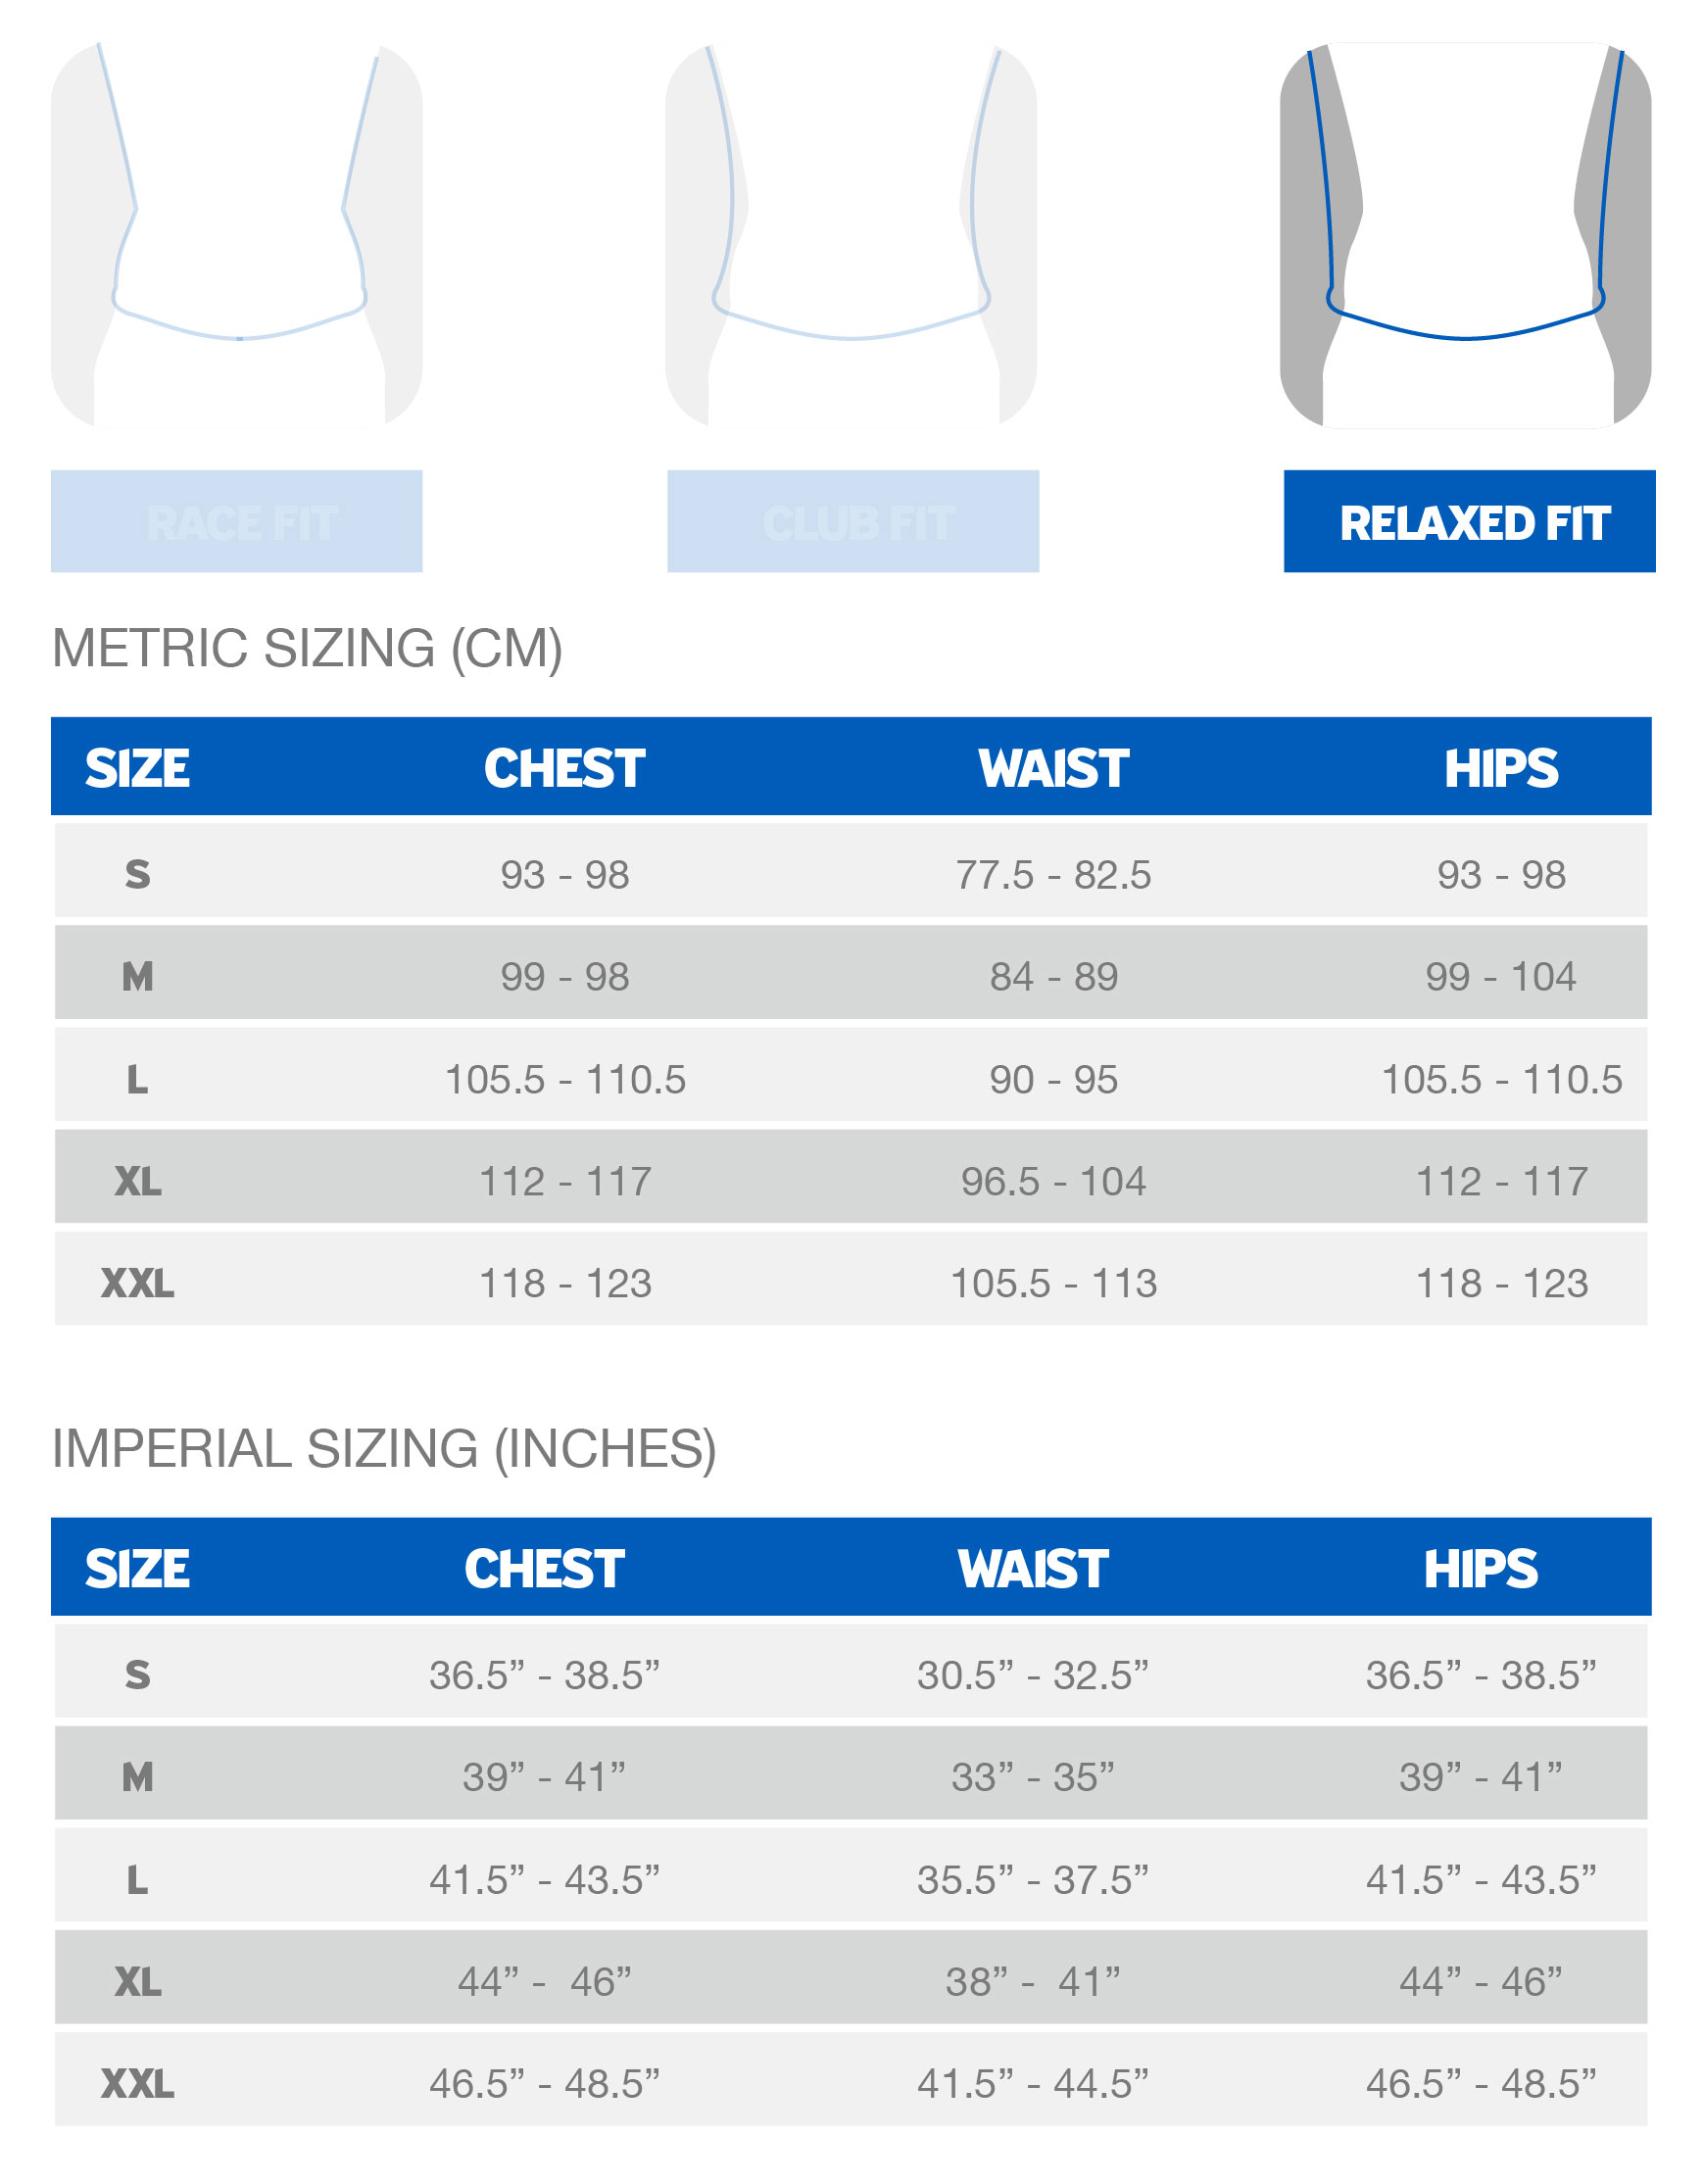 Giant Men's Relaxed Fit sizing chart